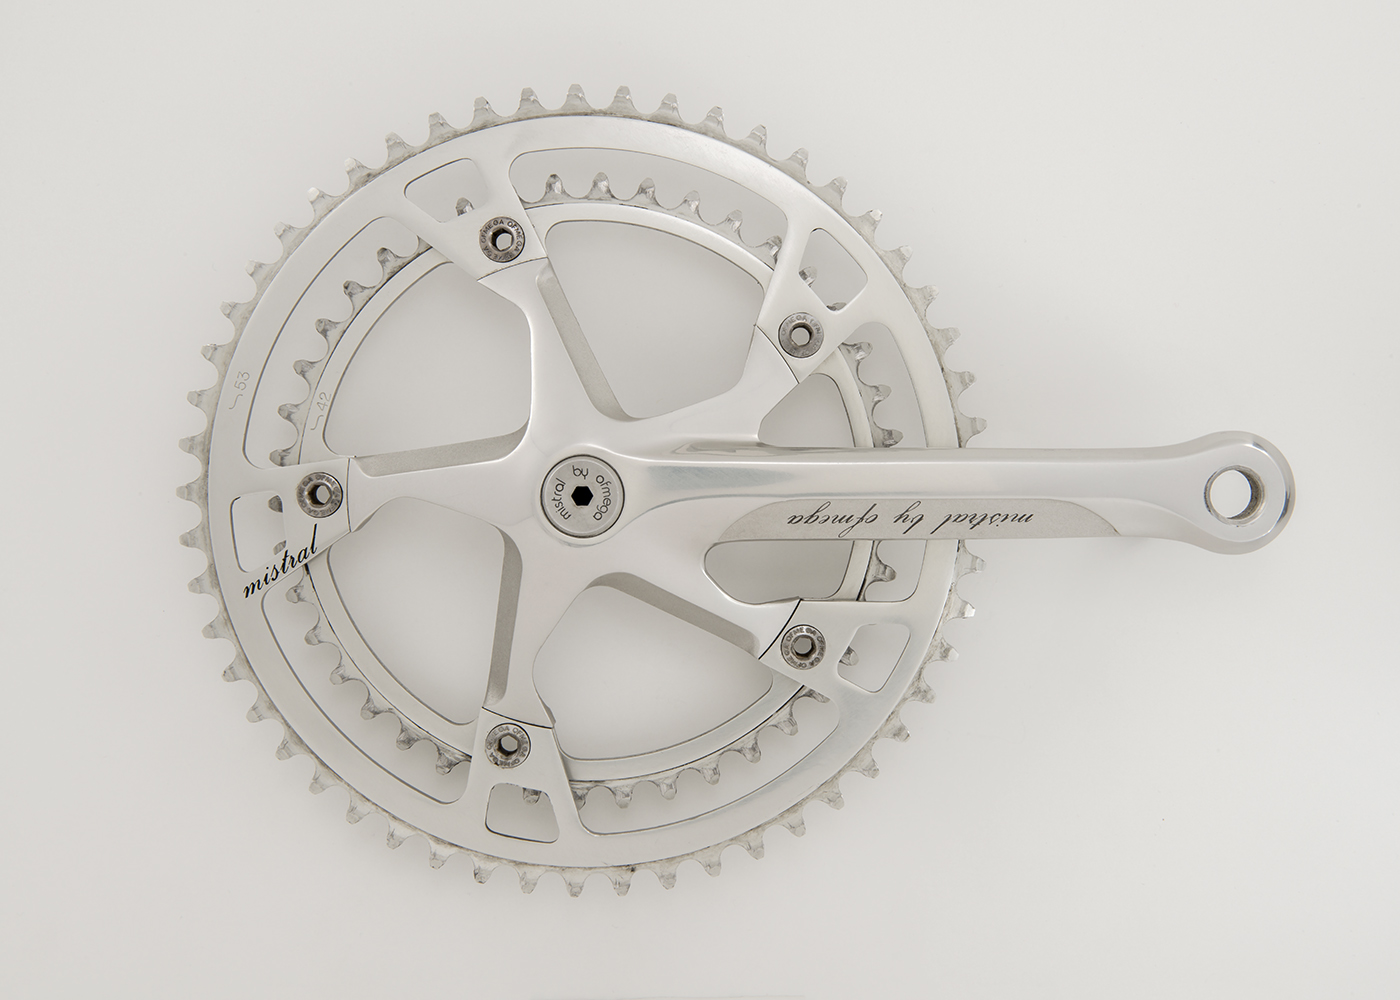 Ofmega Mistral  They were made in the 1980's and feature a proprietary angled spyder and chainrings.